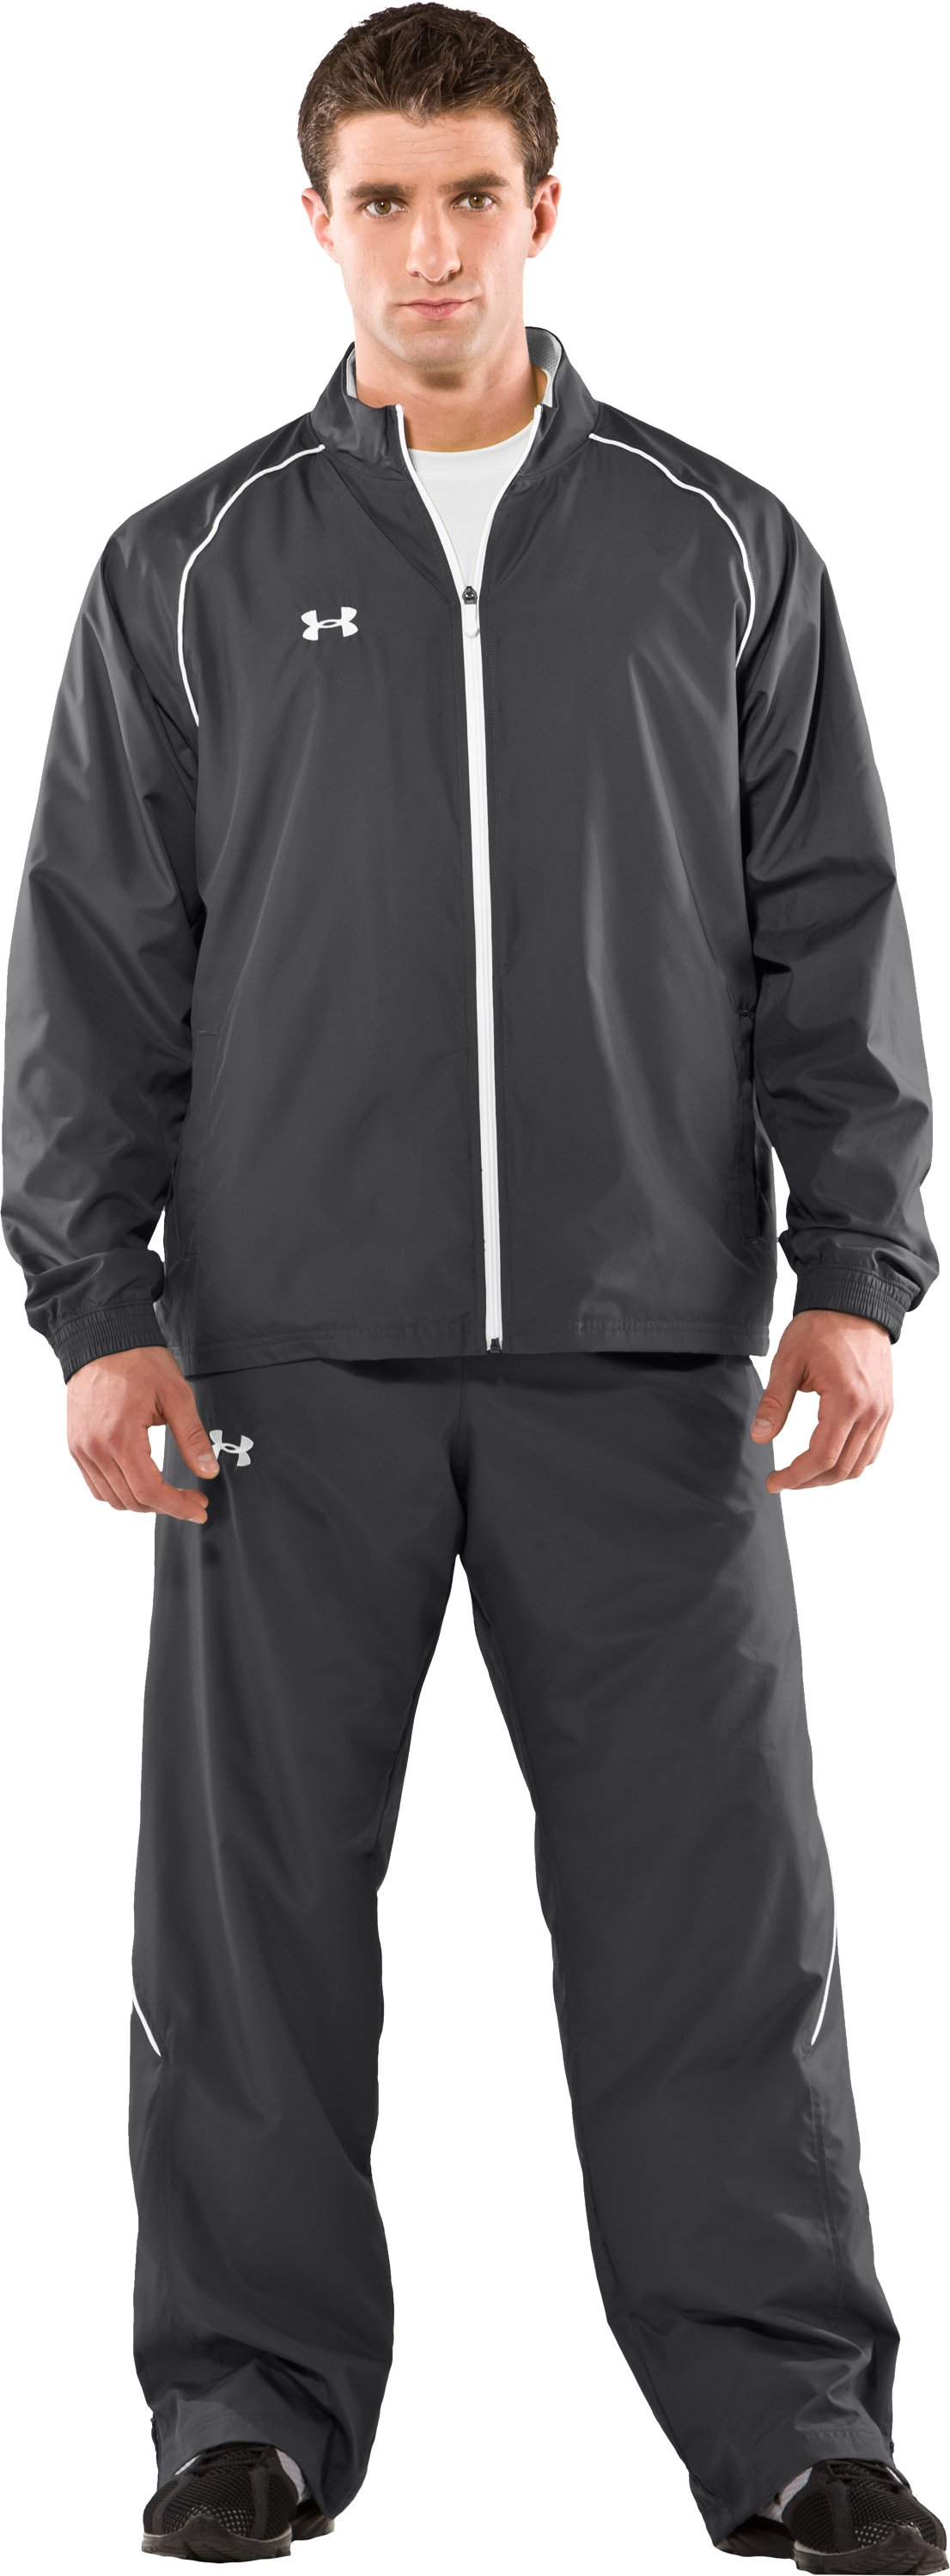 Men's UA Advance Woven Warm-Up Jacket, Graphite